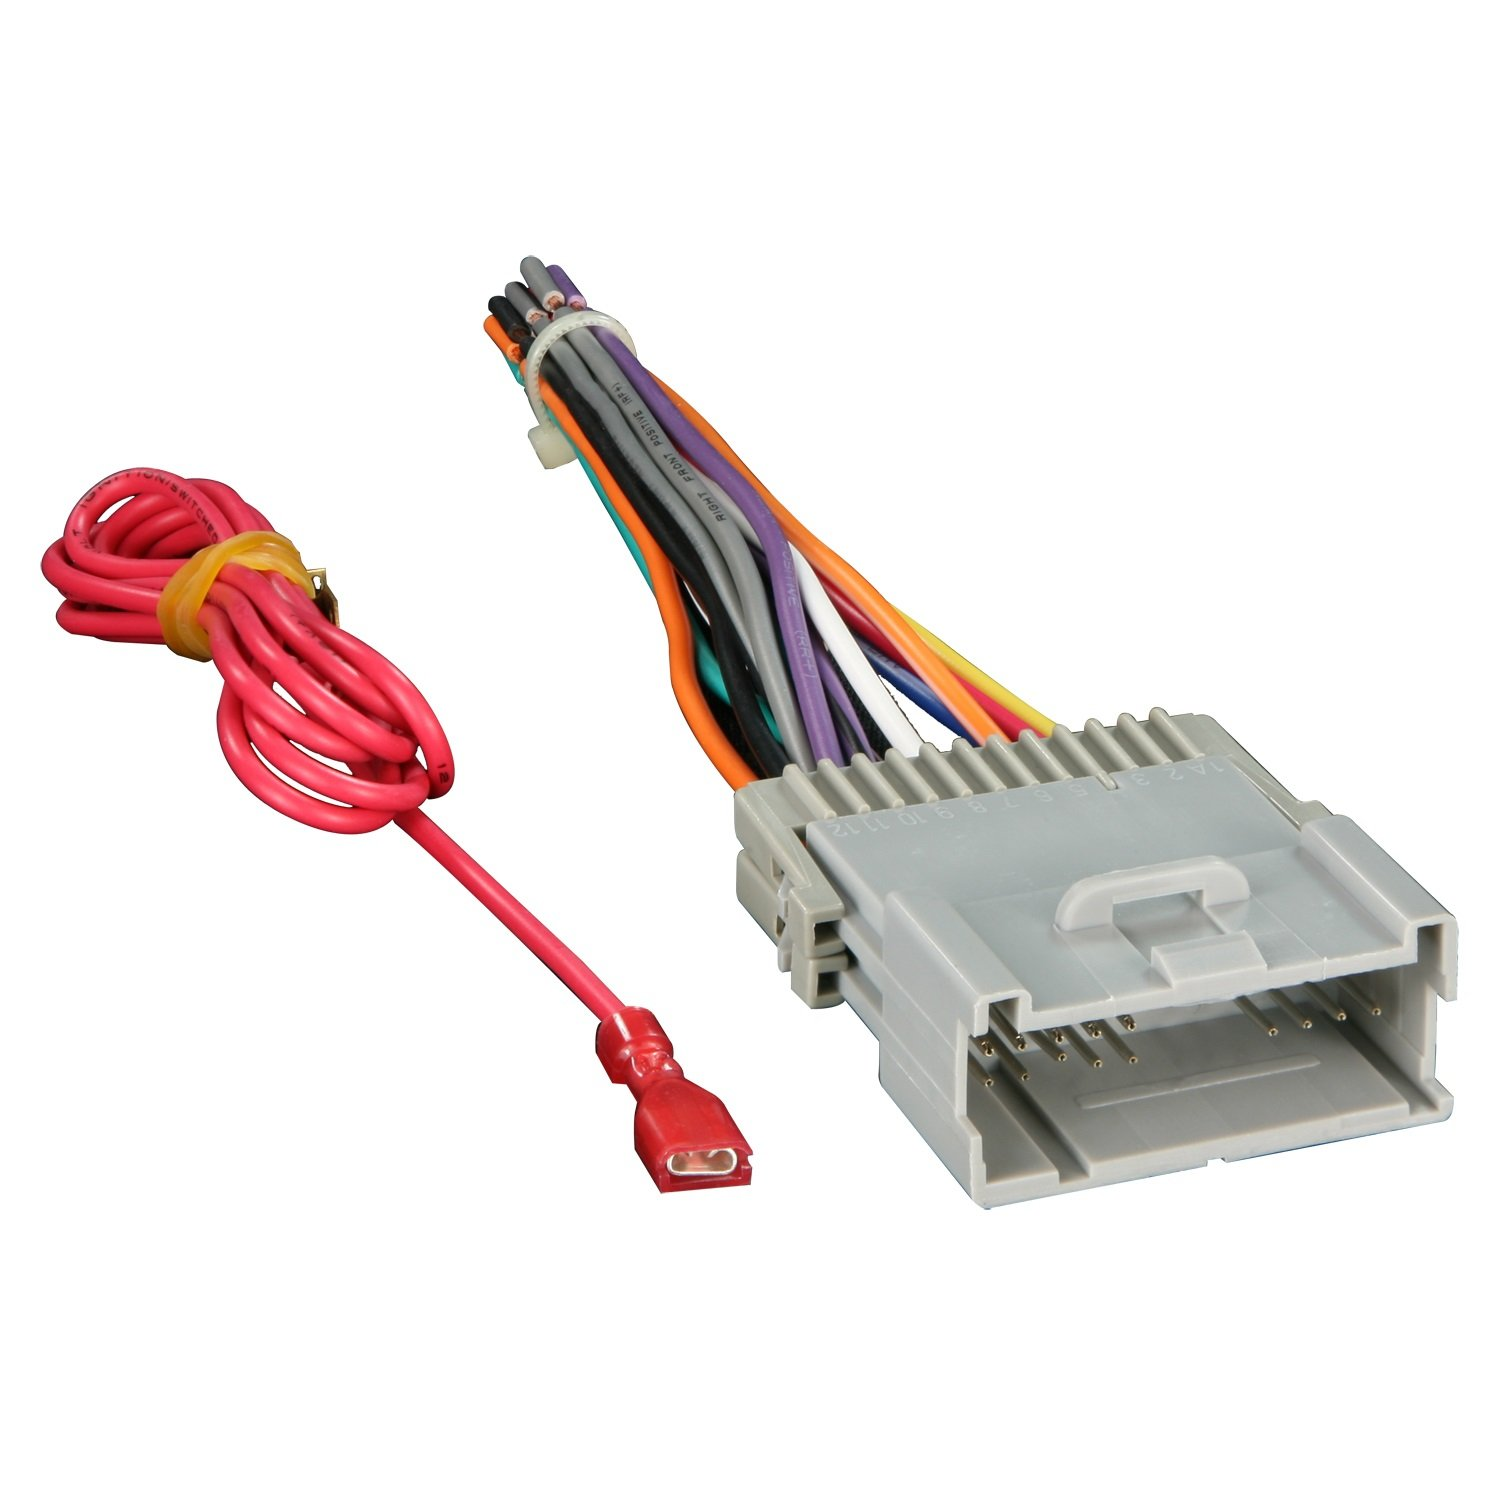 61eewxp9orL._SL1500_ amazon com metra 70 2003 radio wiring harness for gm 98 08 how to get wire out harness at gsmportal.co